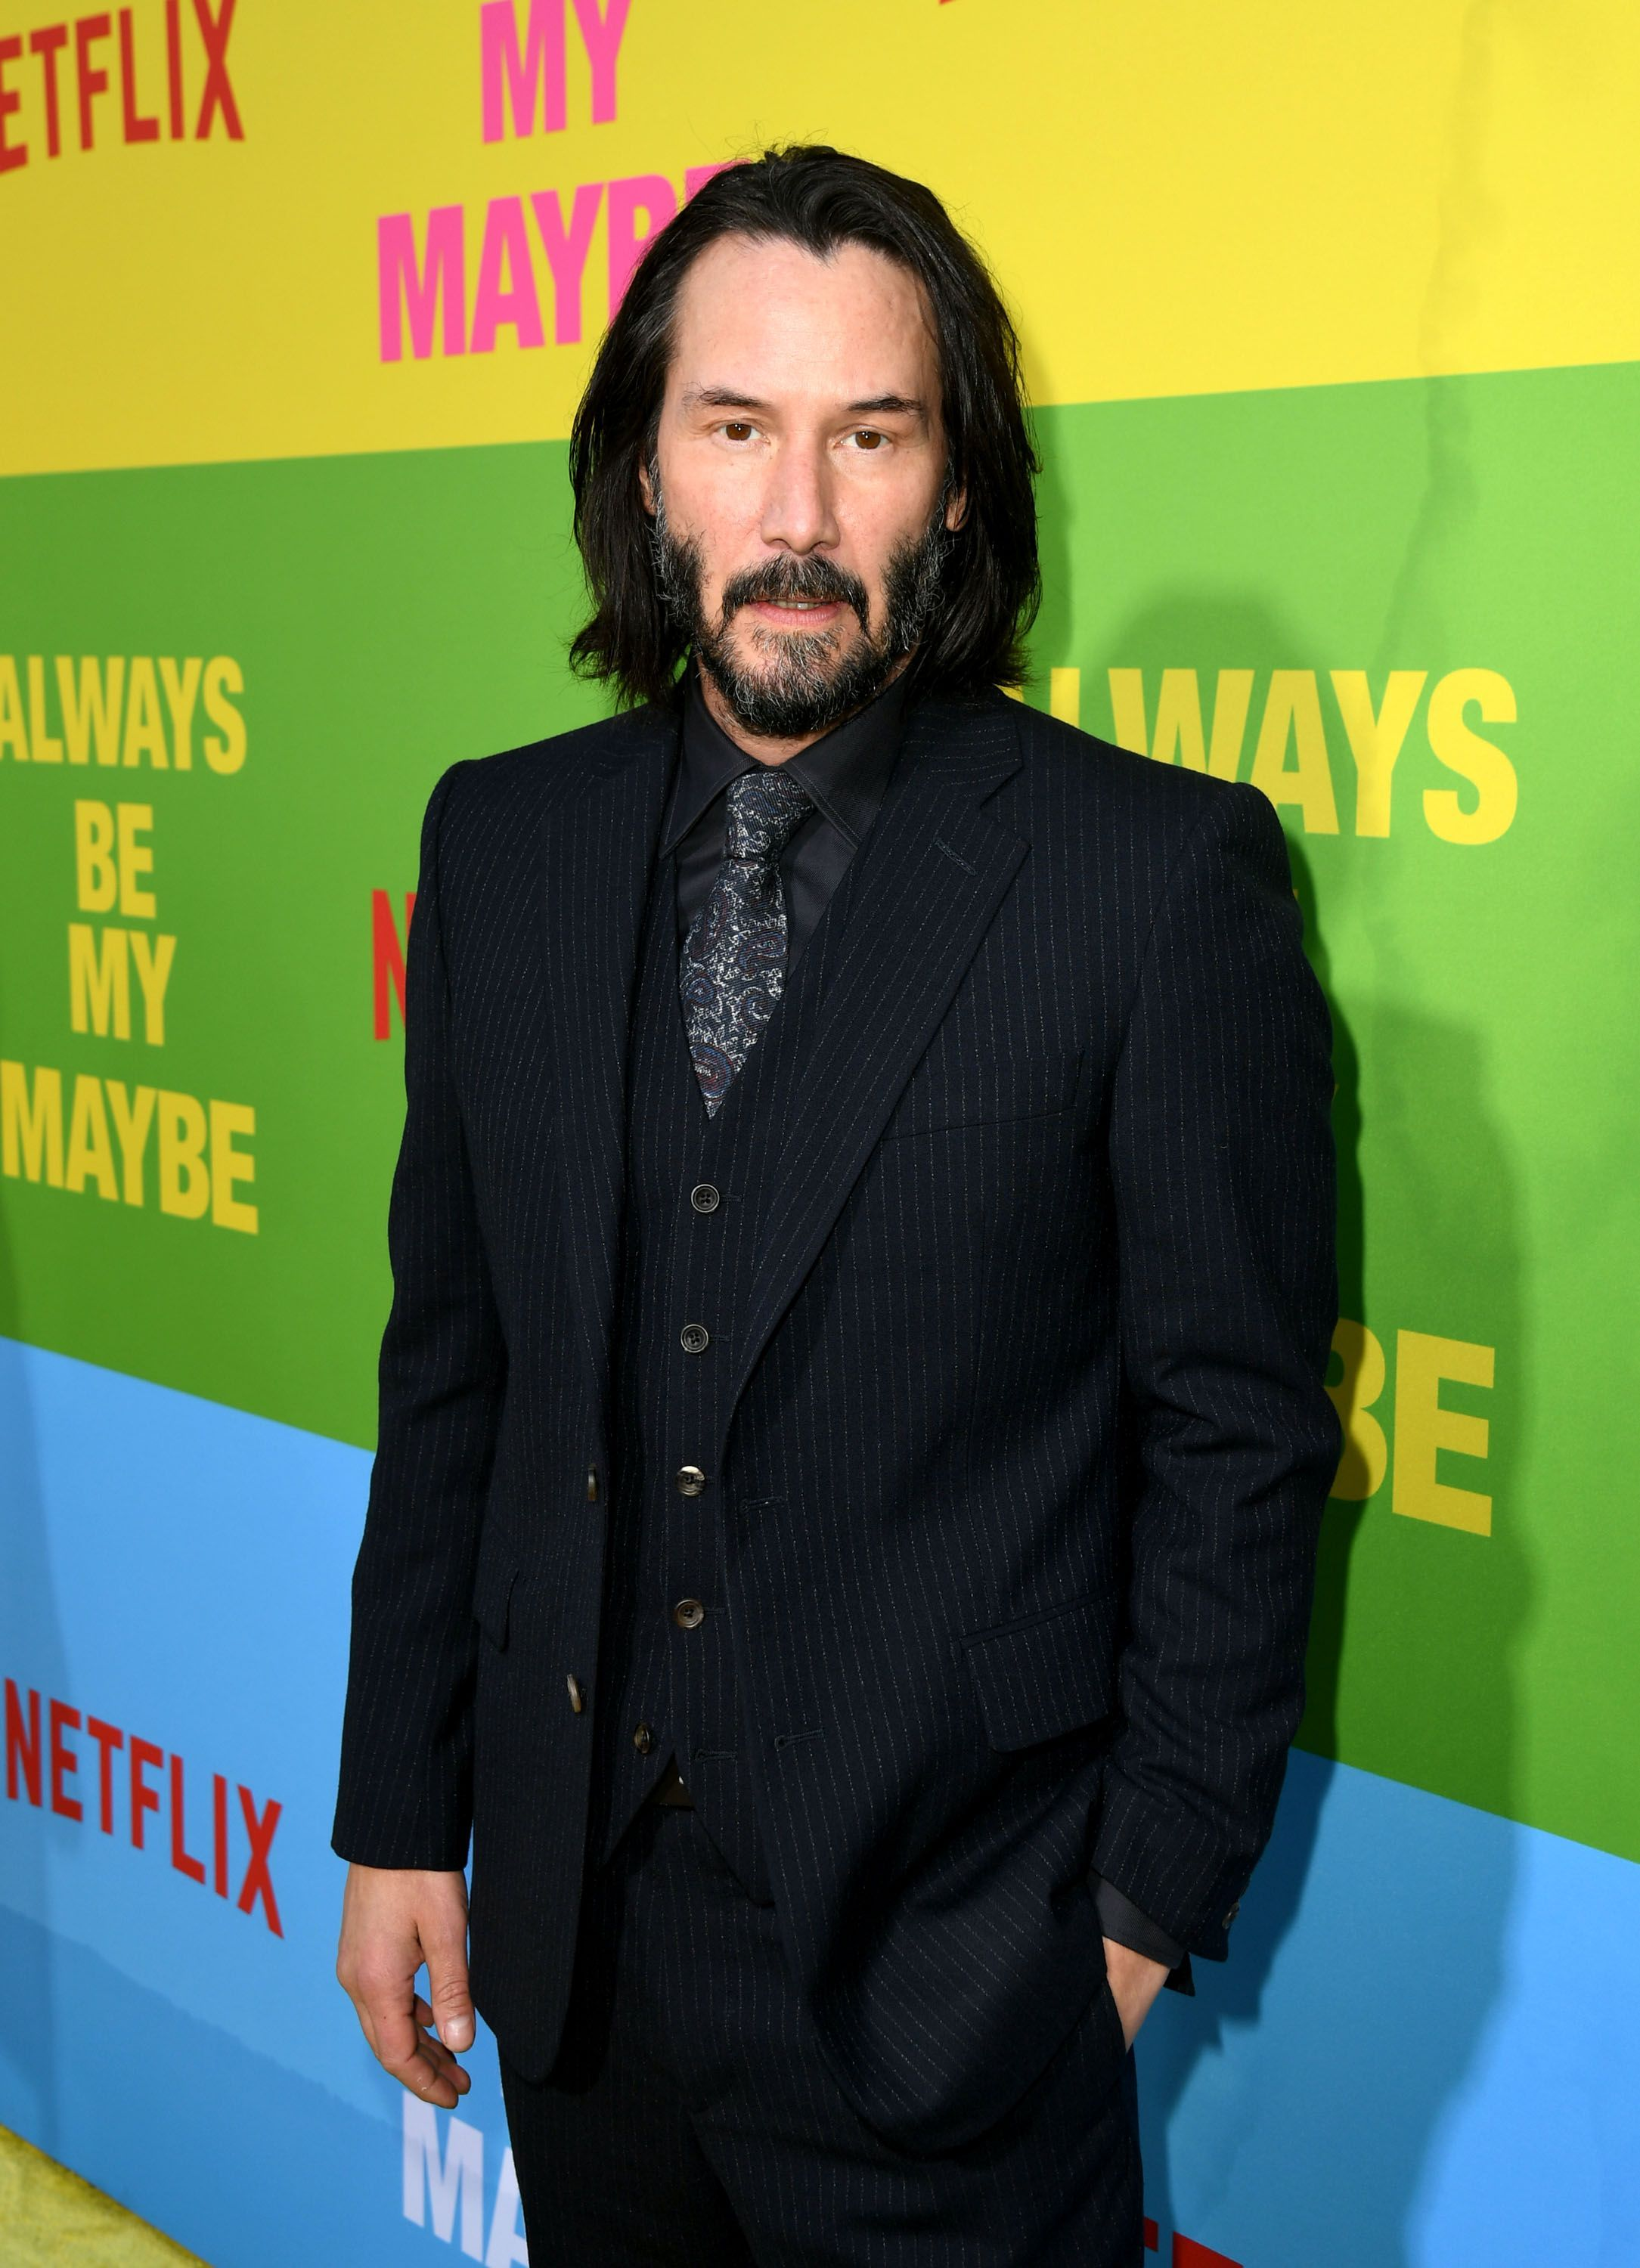 Keanu Reeves Has Been Receiving Quite A Bit Of Positive Press Lately And It S Not Just From His Roles In John Keanu Reeves Keanu Charles Reeves People Magazine